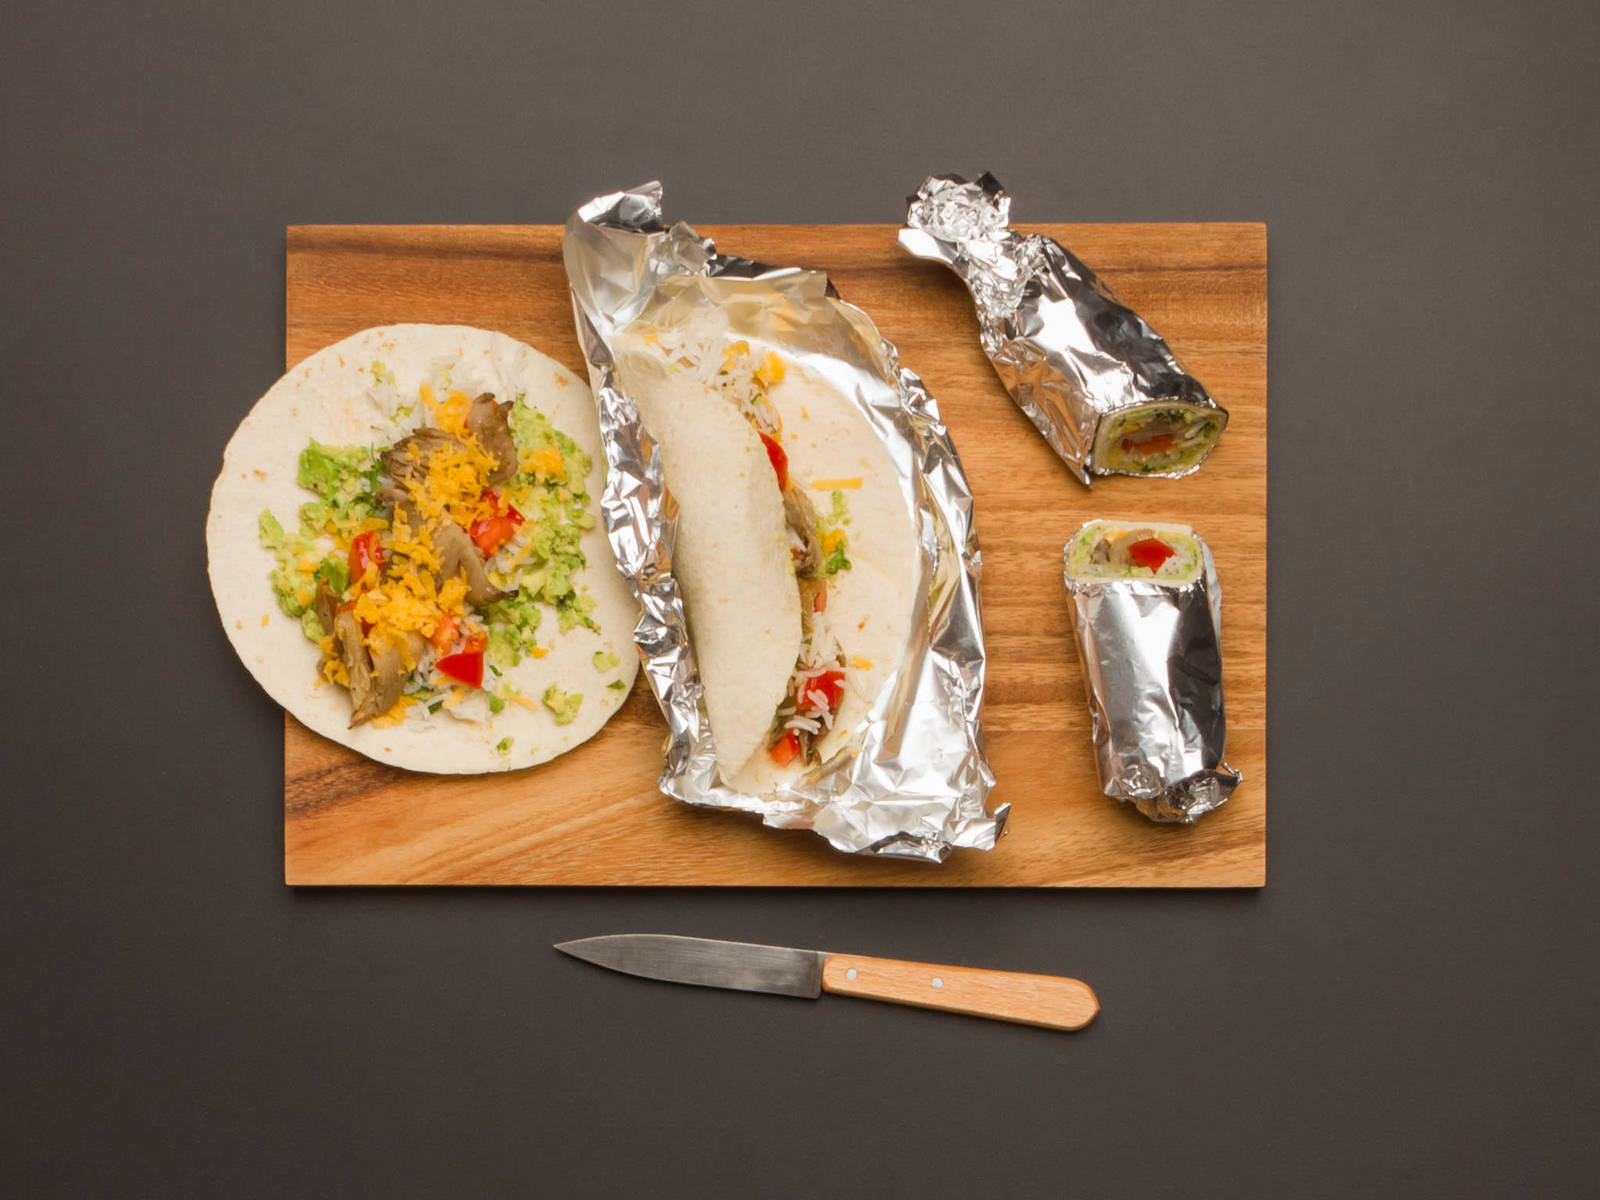 Fold the tortillas in from the sides and then roll forward with your thumbs until burrito is tightly rolled. Wrap with aluminum foil and cut in half. Serve garnished with reserved cilantro leaves.